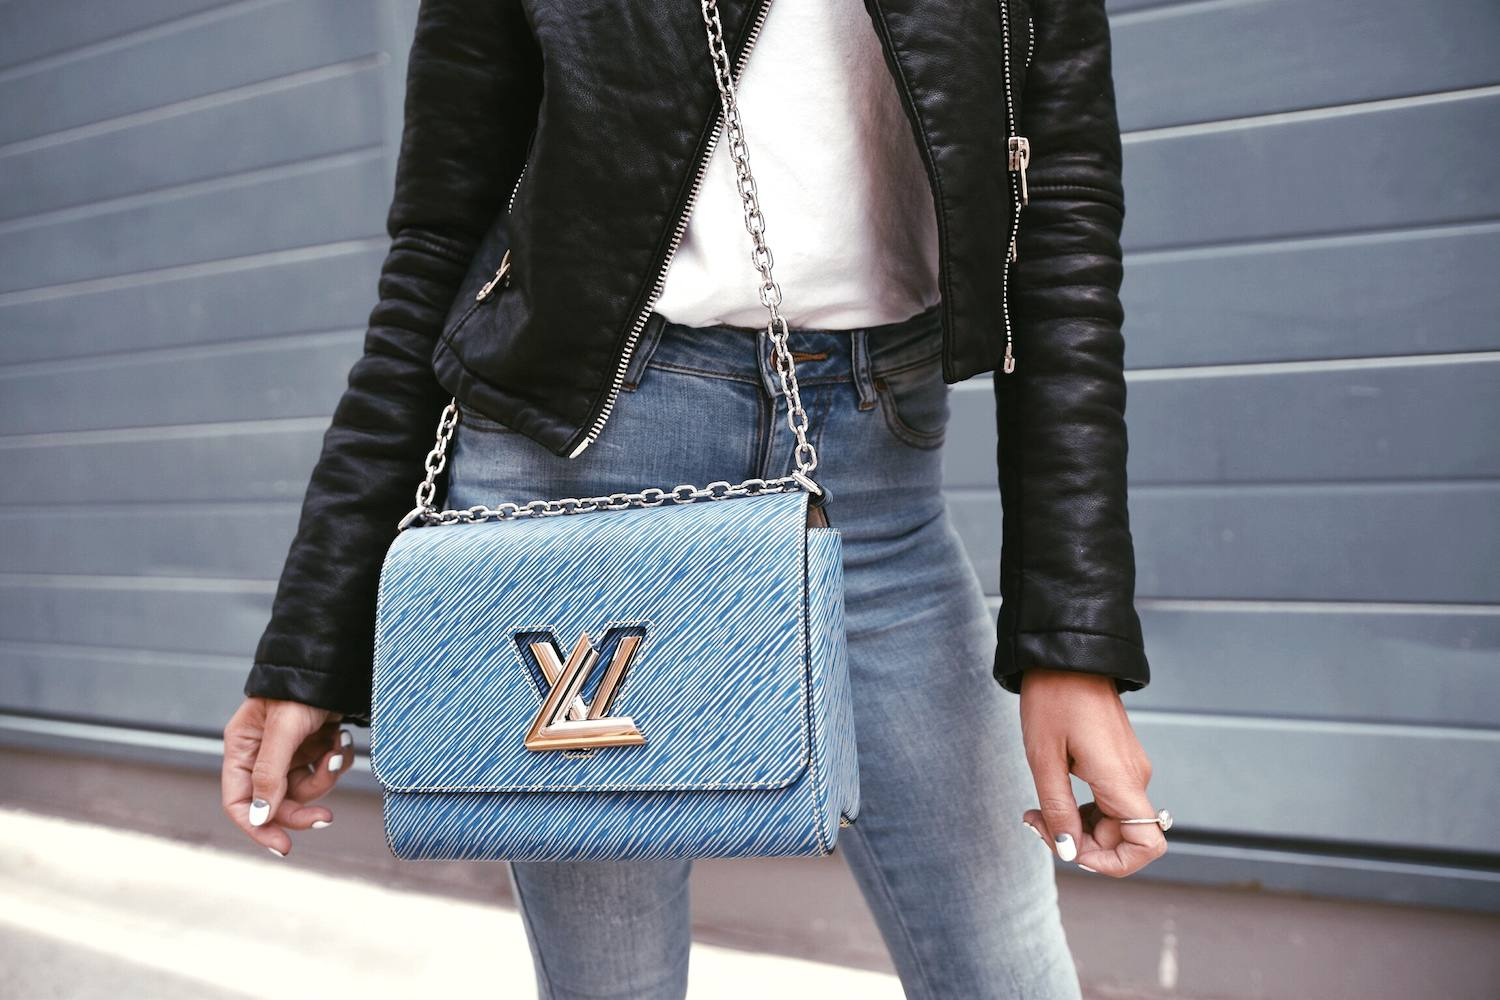 Louis Vuitton Twist Bag 23